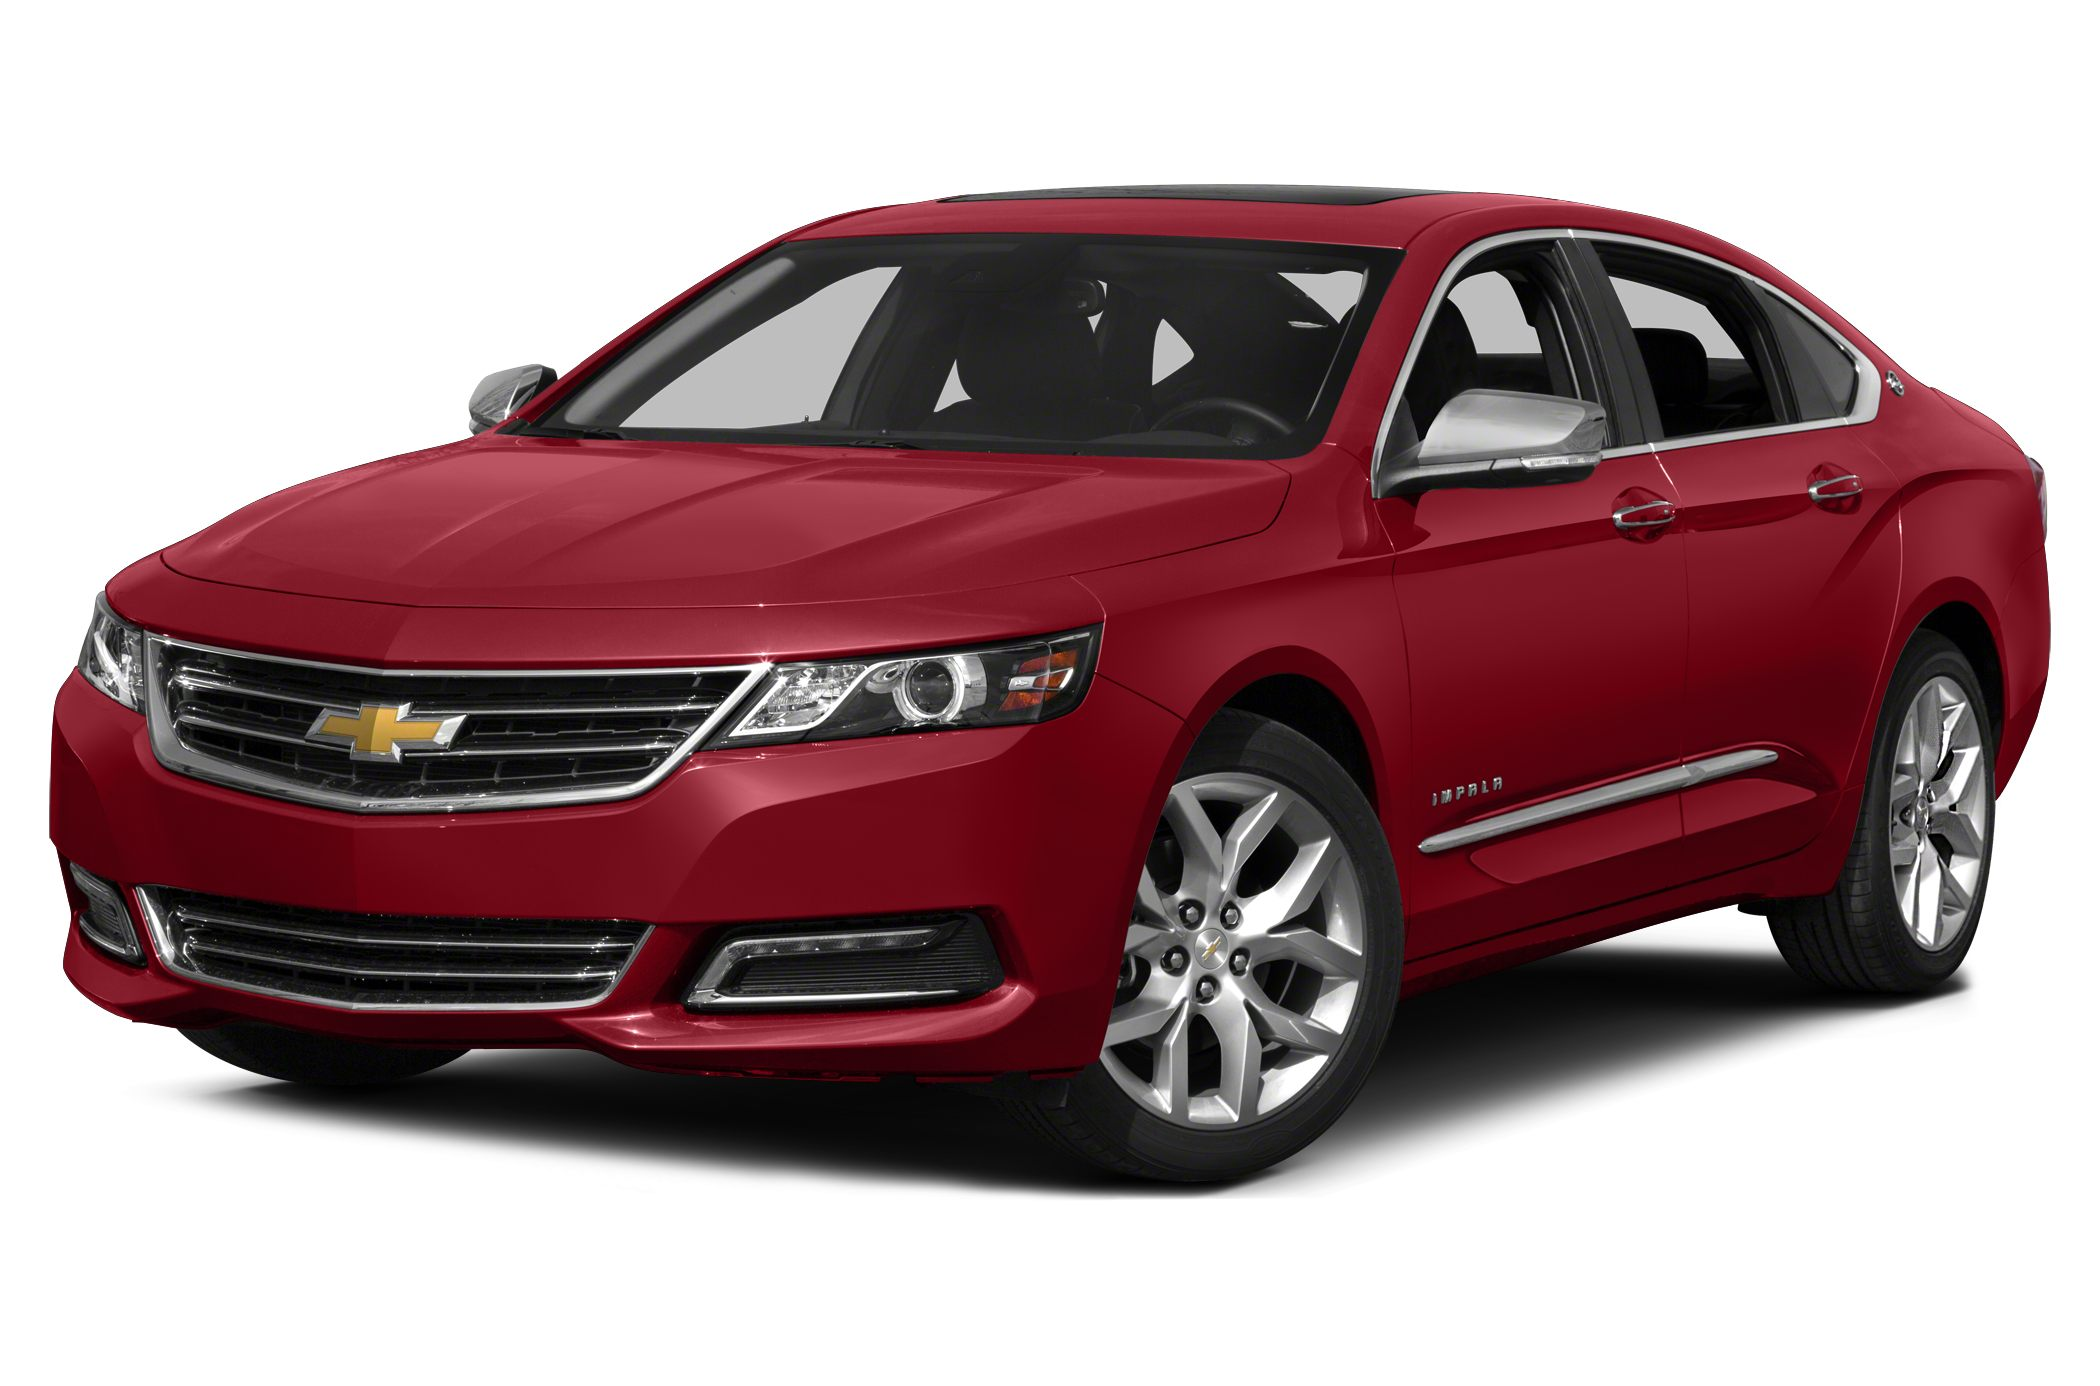 2015 Chevrolet Impala 2LT Sedan for sale in Plymouth for $32,601 with 1 miles